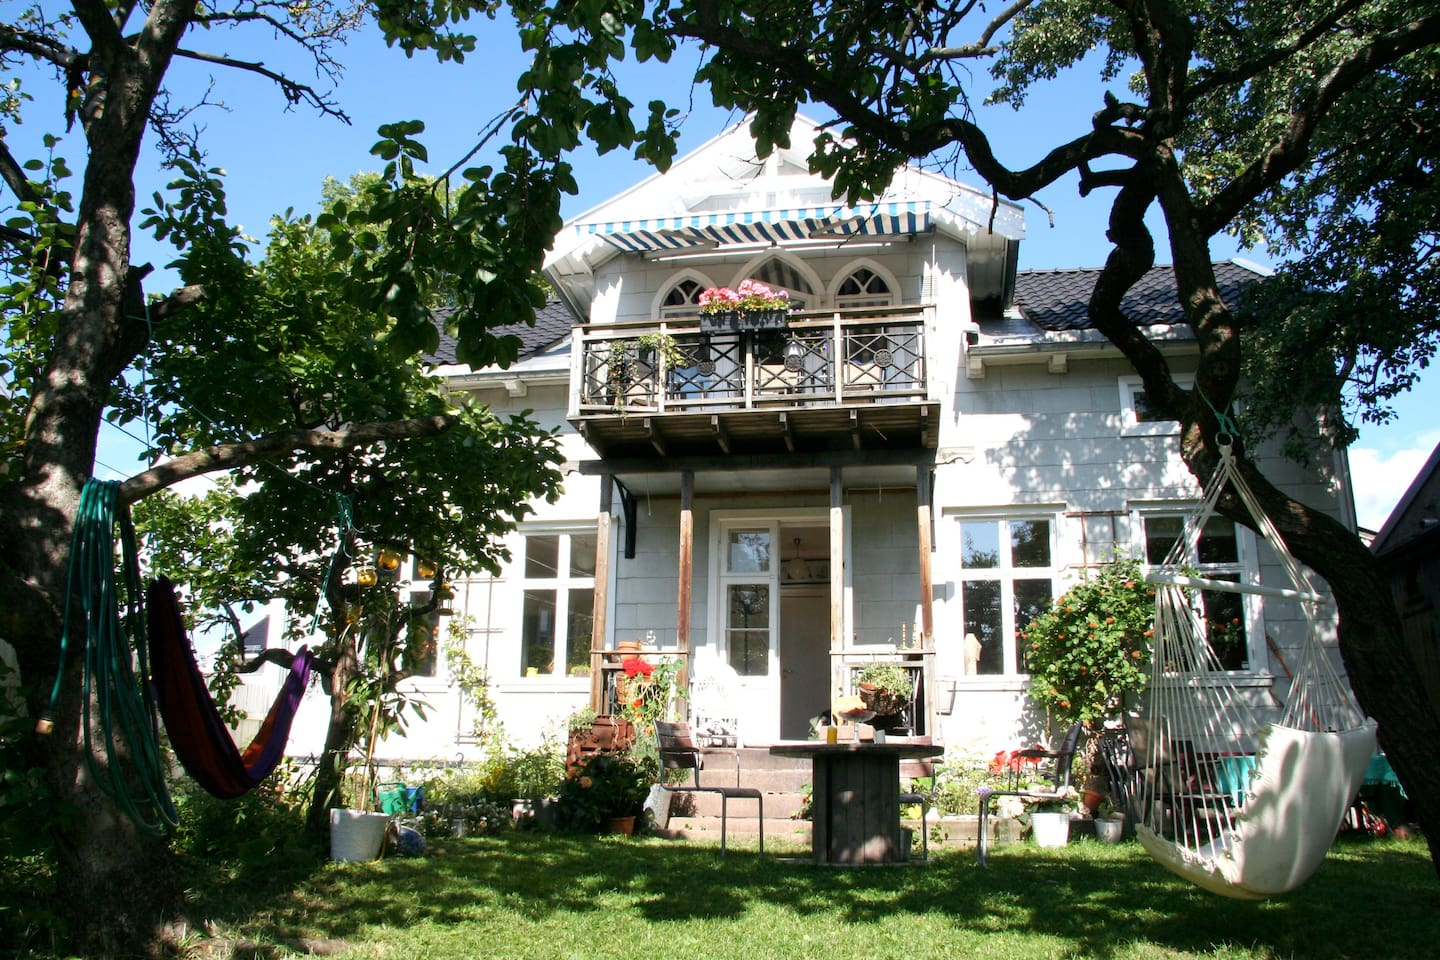 Best place to stay in central Oslo!